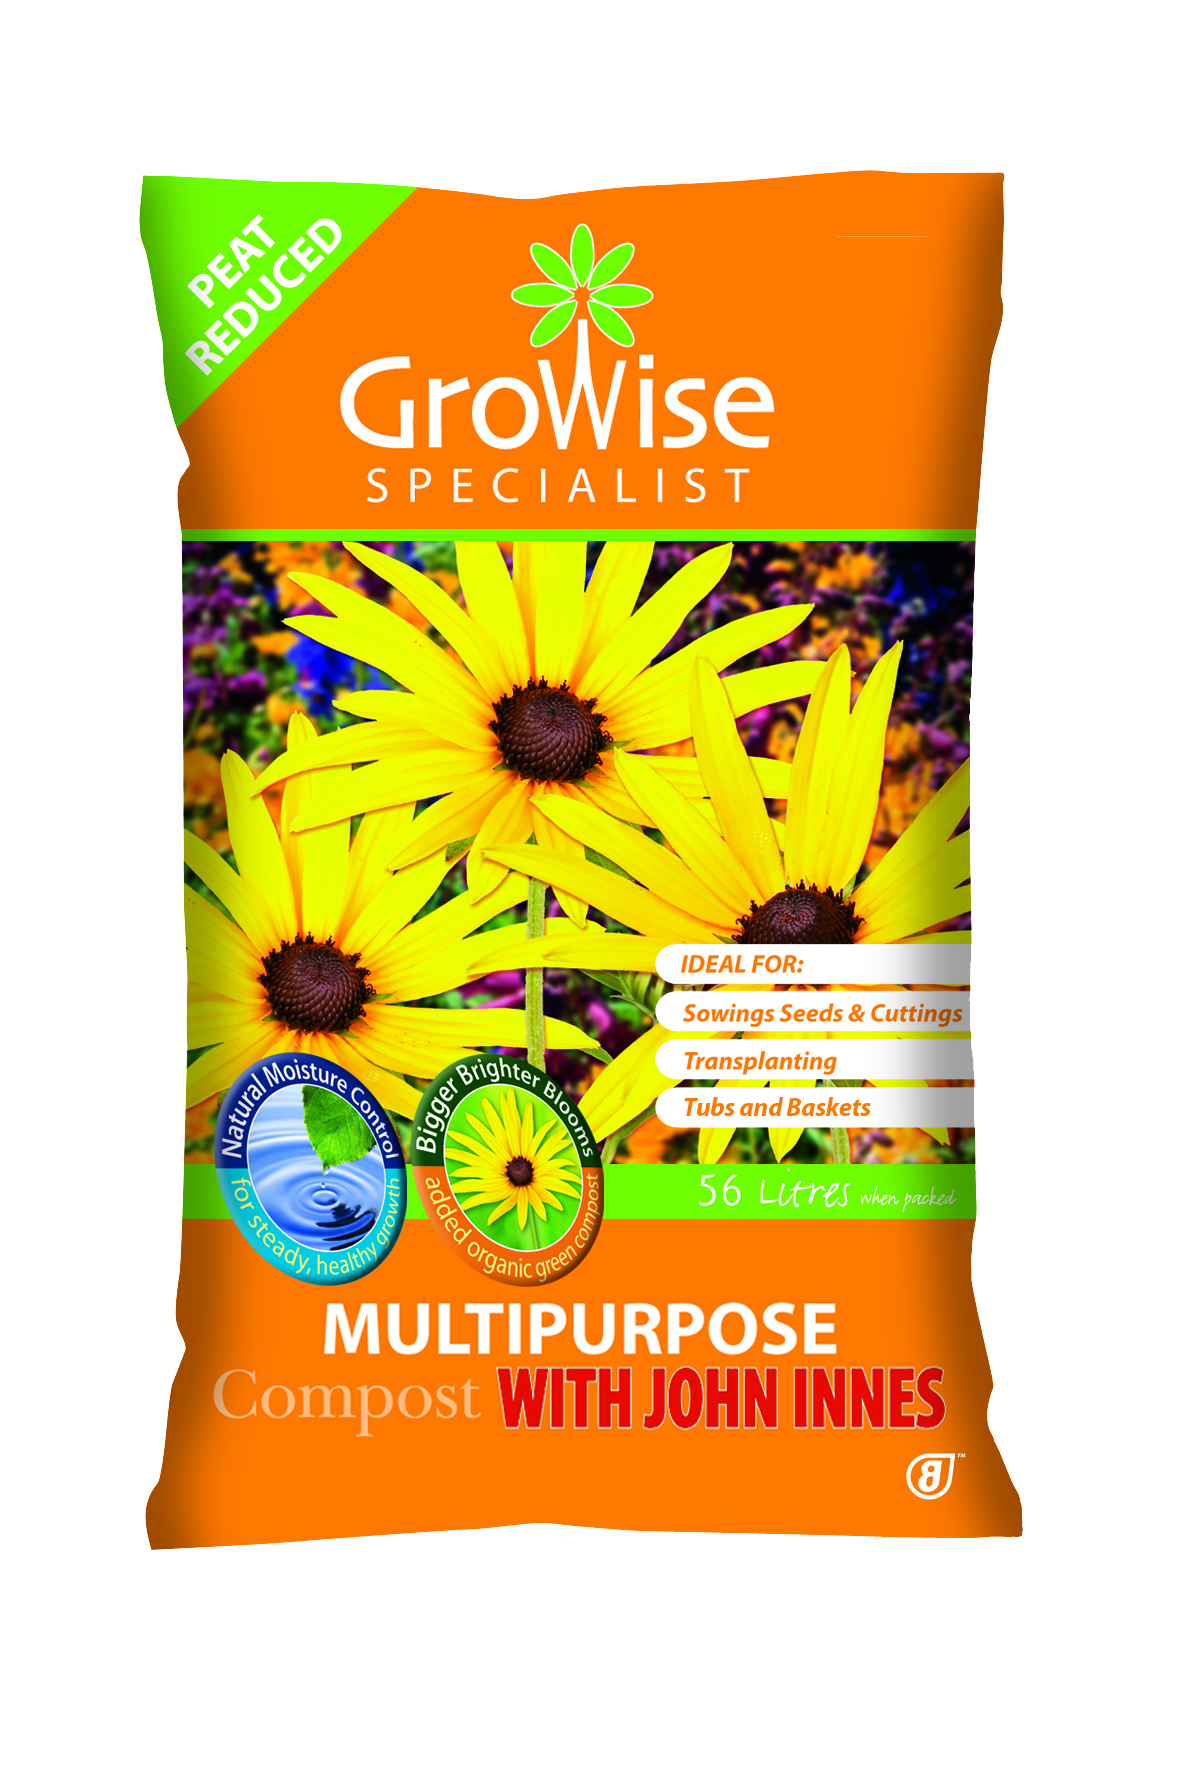 Image for westland multi purpose compost with john innes 50l from - Growise Multi Purpose Compost With John Innes